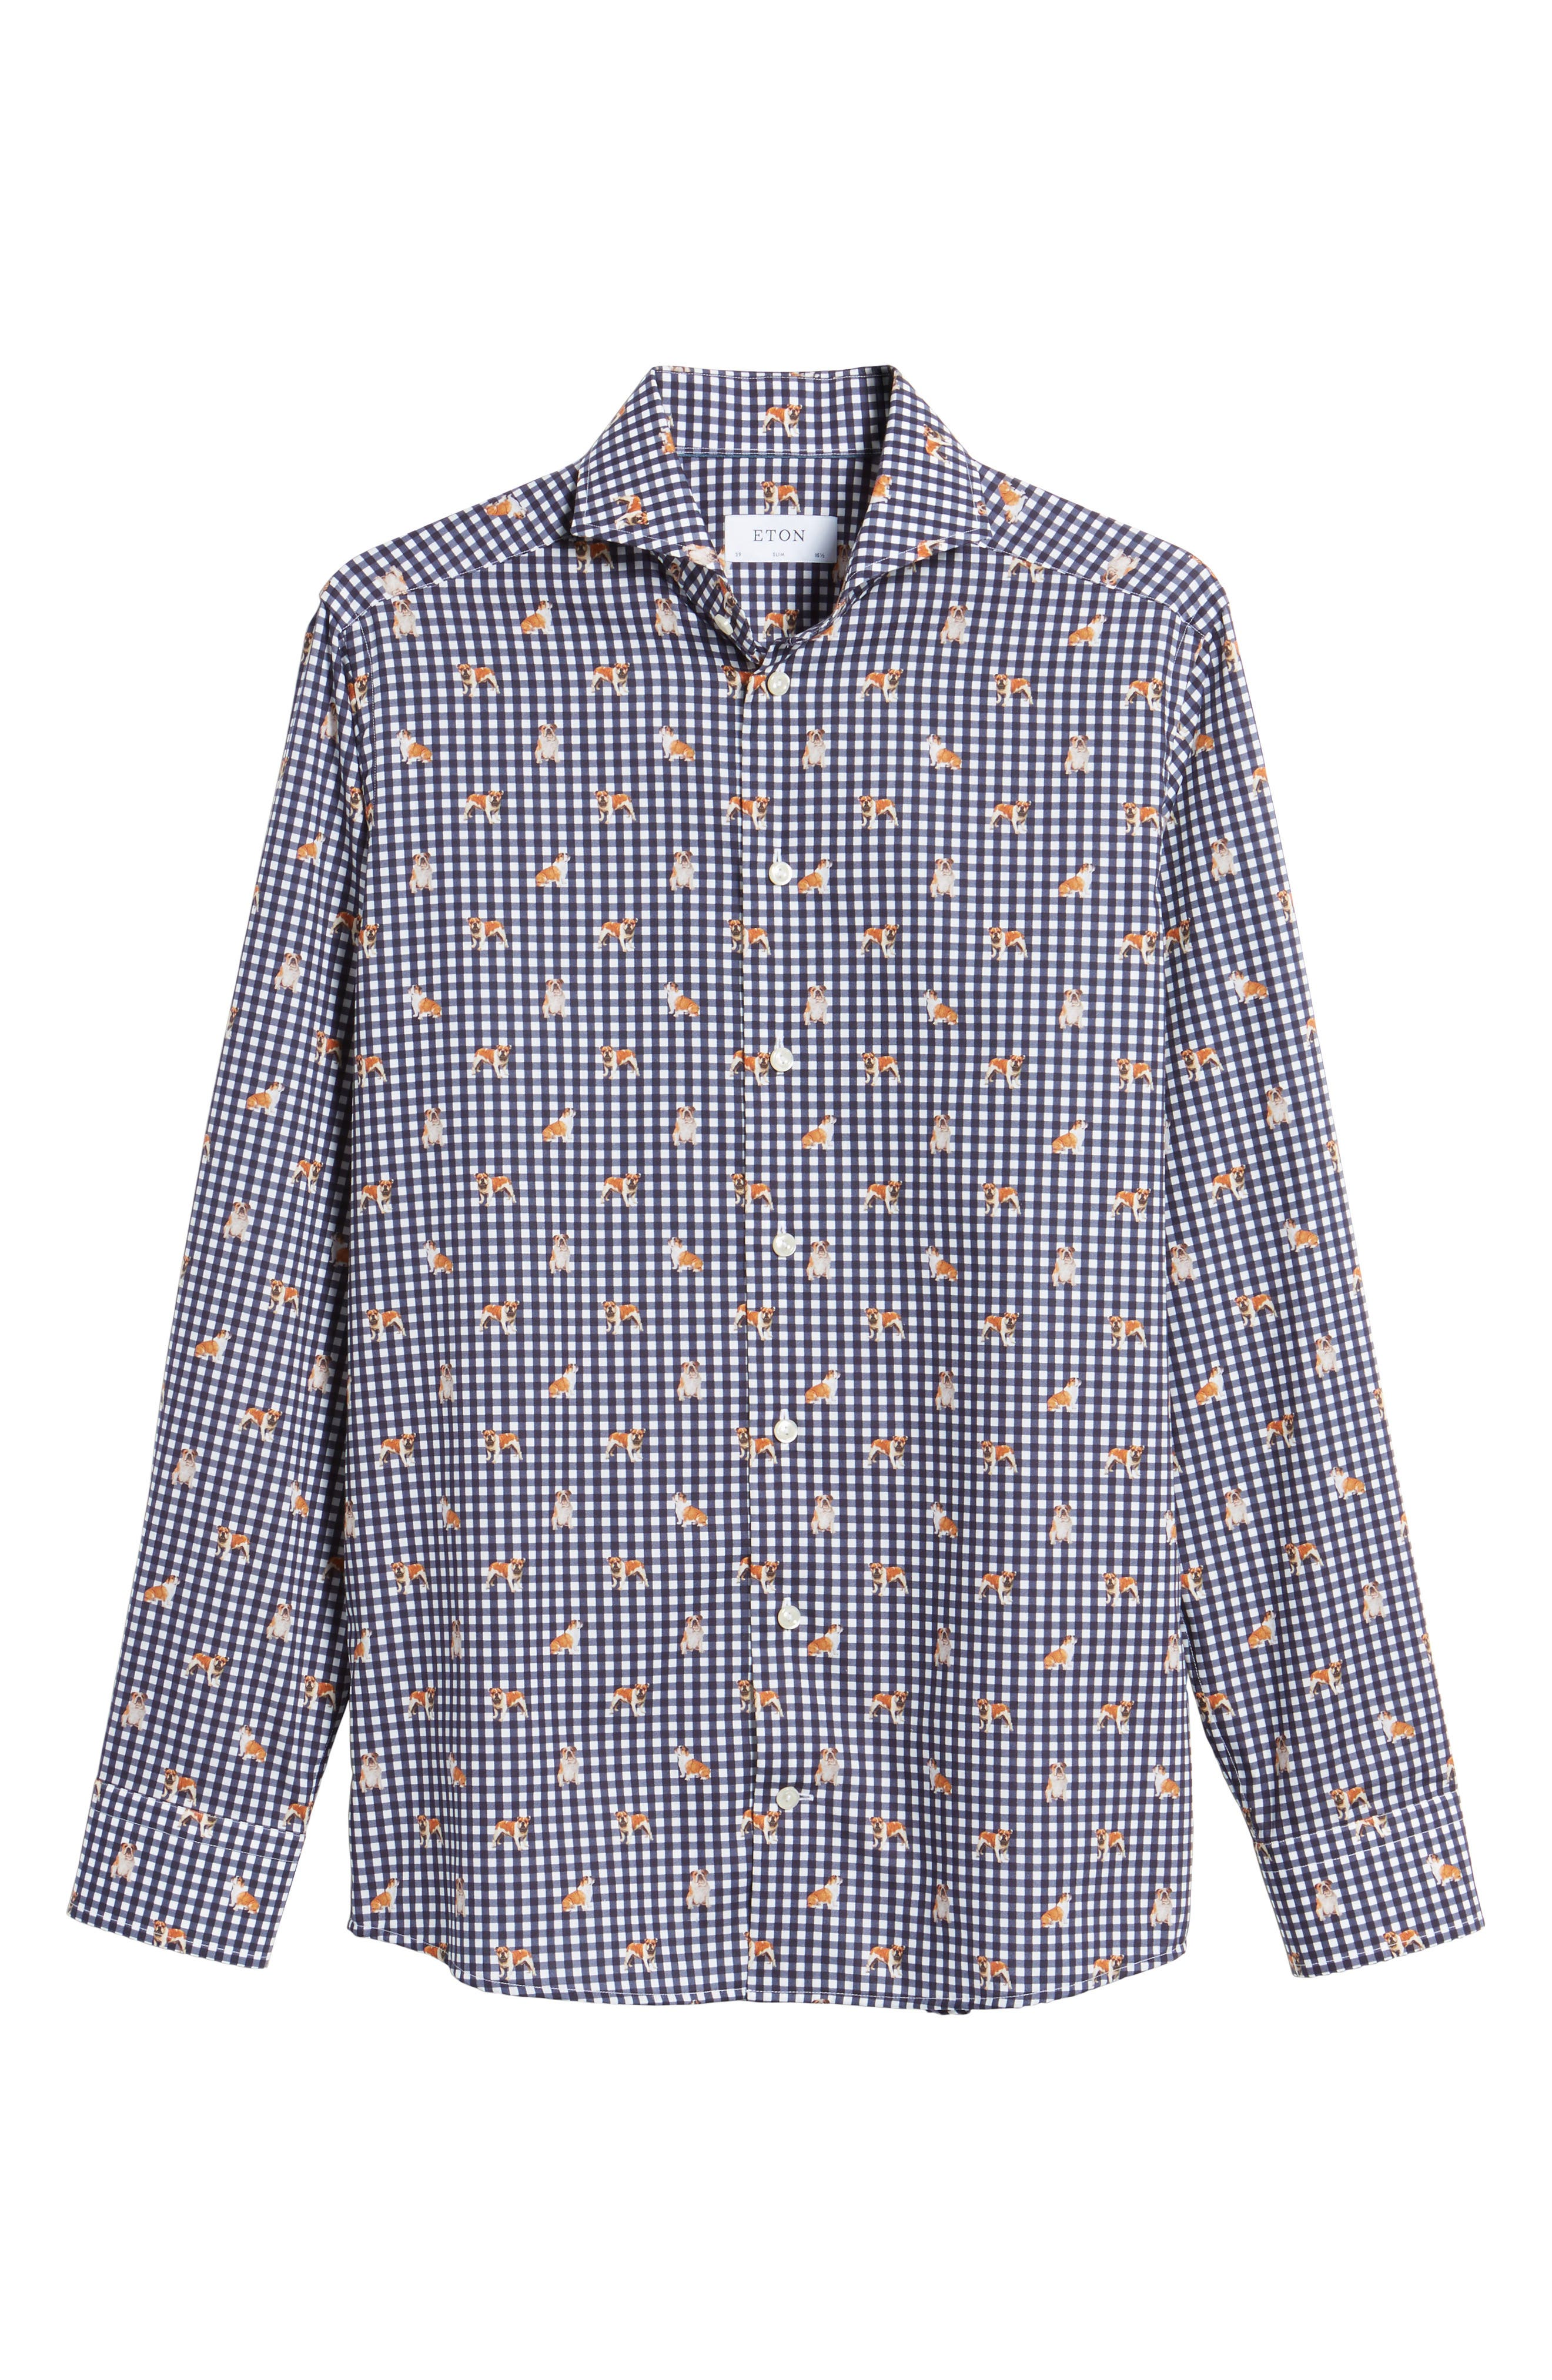 Alternate Image 5  - Eton Slim Fit Print Dress Shirt